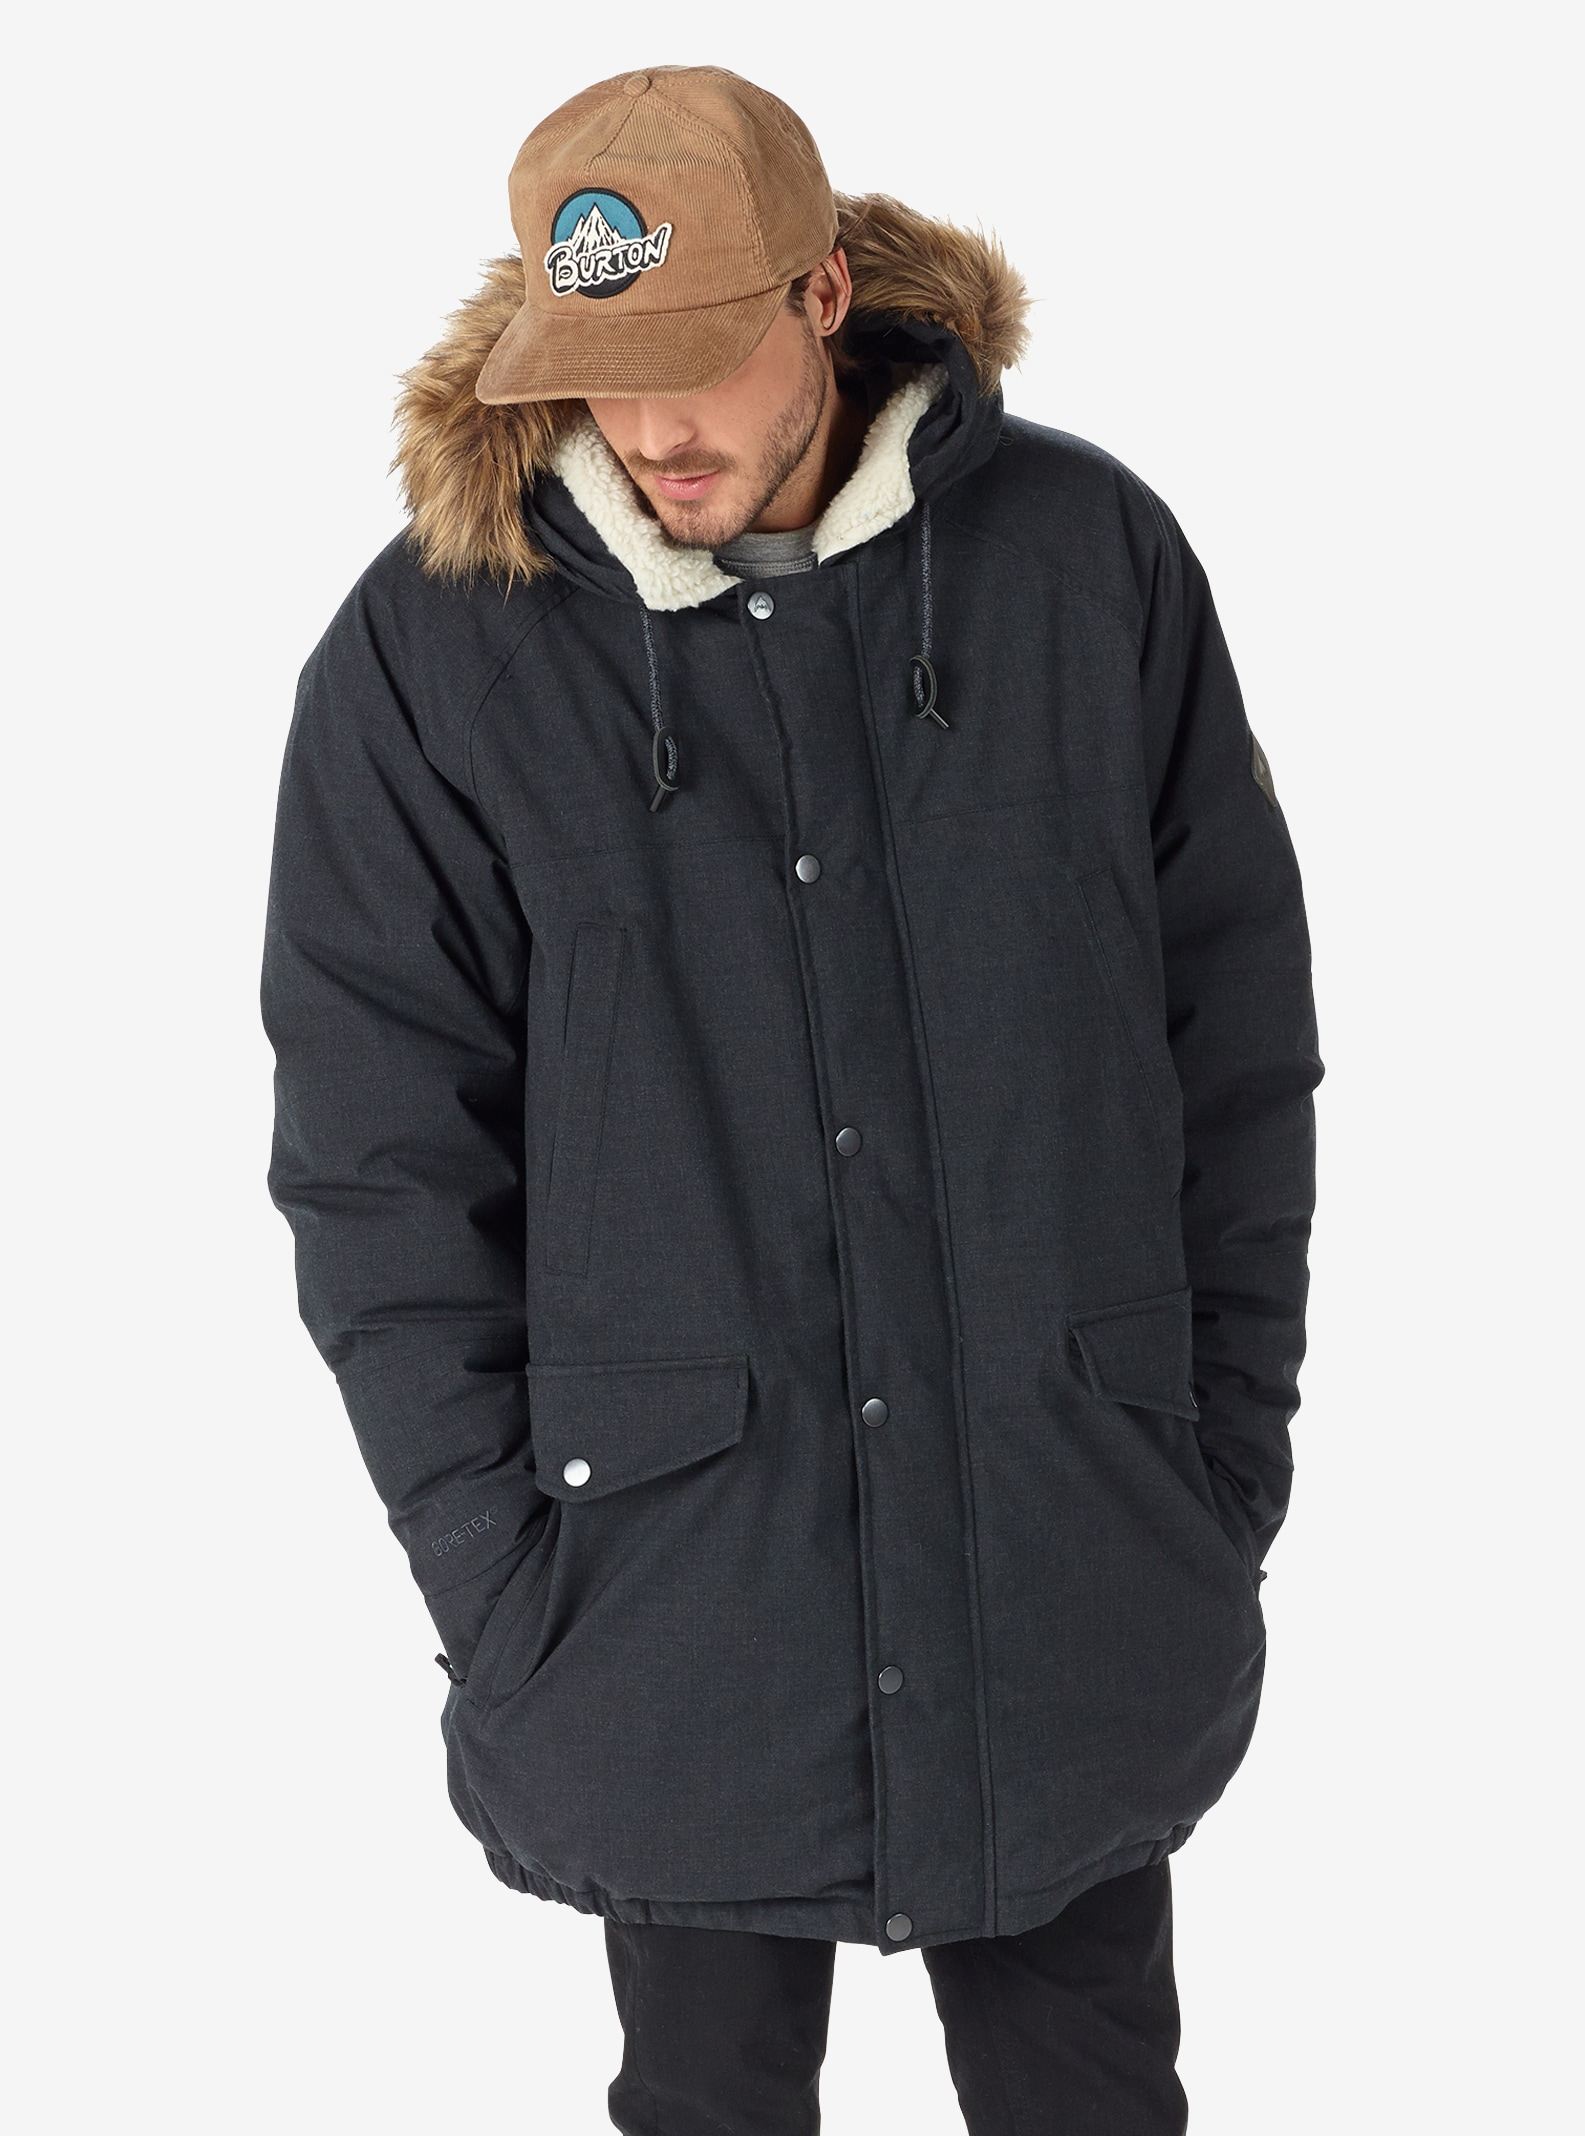 Men's Burton GORE-TEX® Garrison Jacket shown in Shade Heather